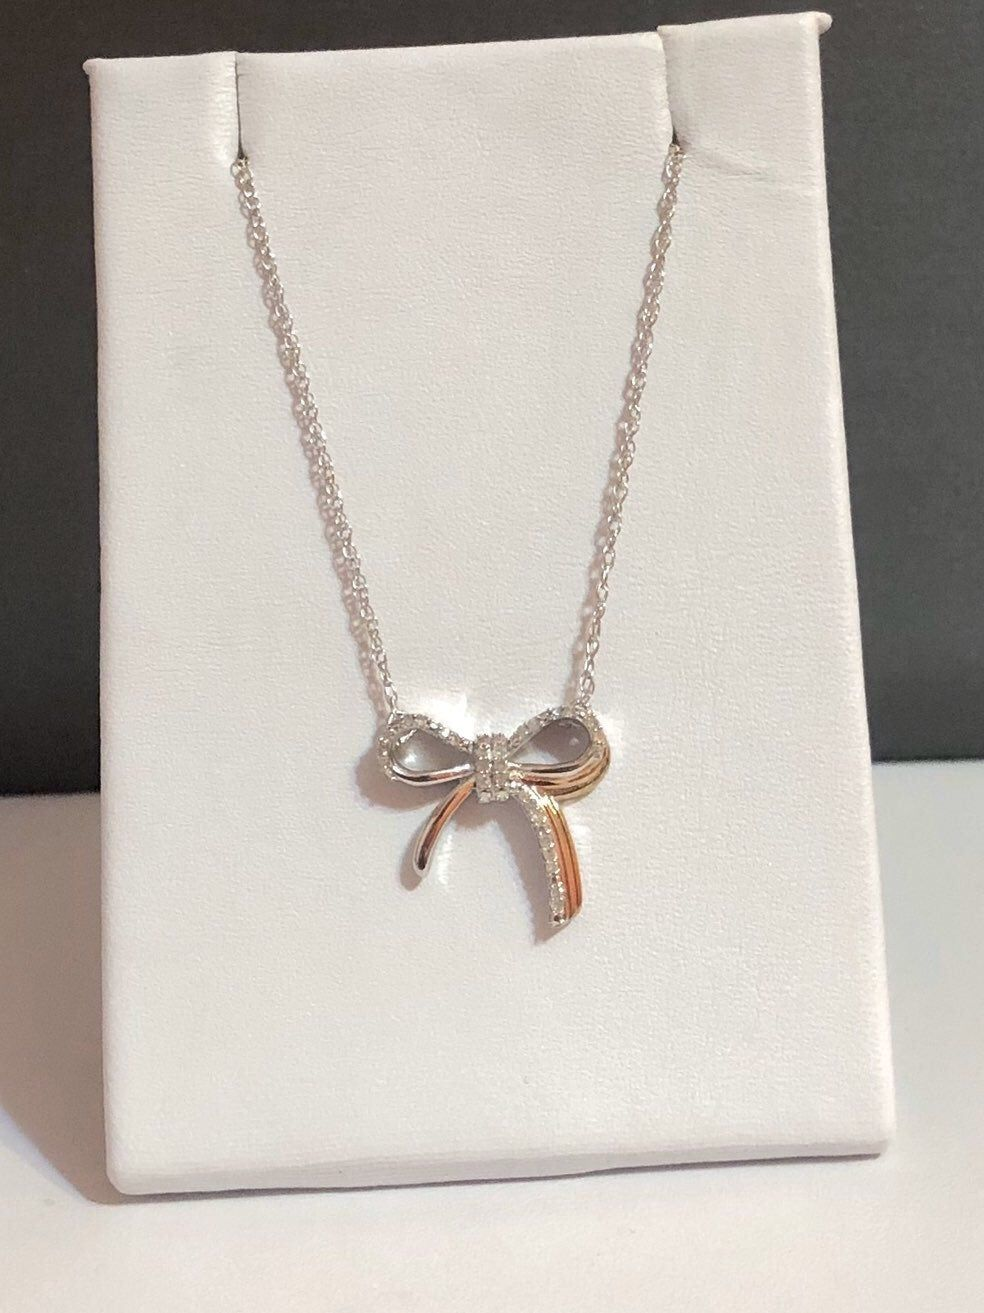 Nwot 22ctw Genuine Diamond Sterling Silver 18 Necklace Adorable Diamond Bow Necklace With A Small Accent Of 14 Kay Jewelers Necklaces Bow Necklace Necklace